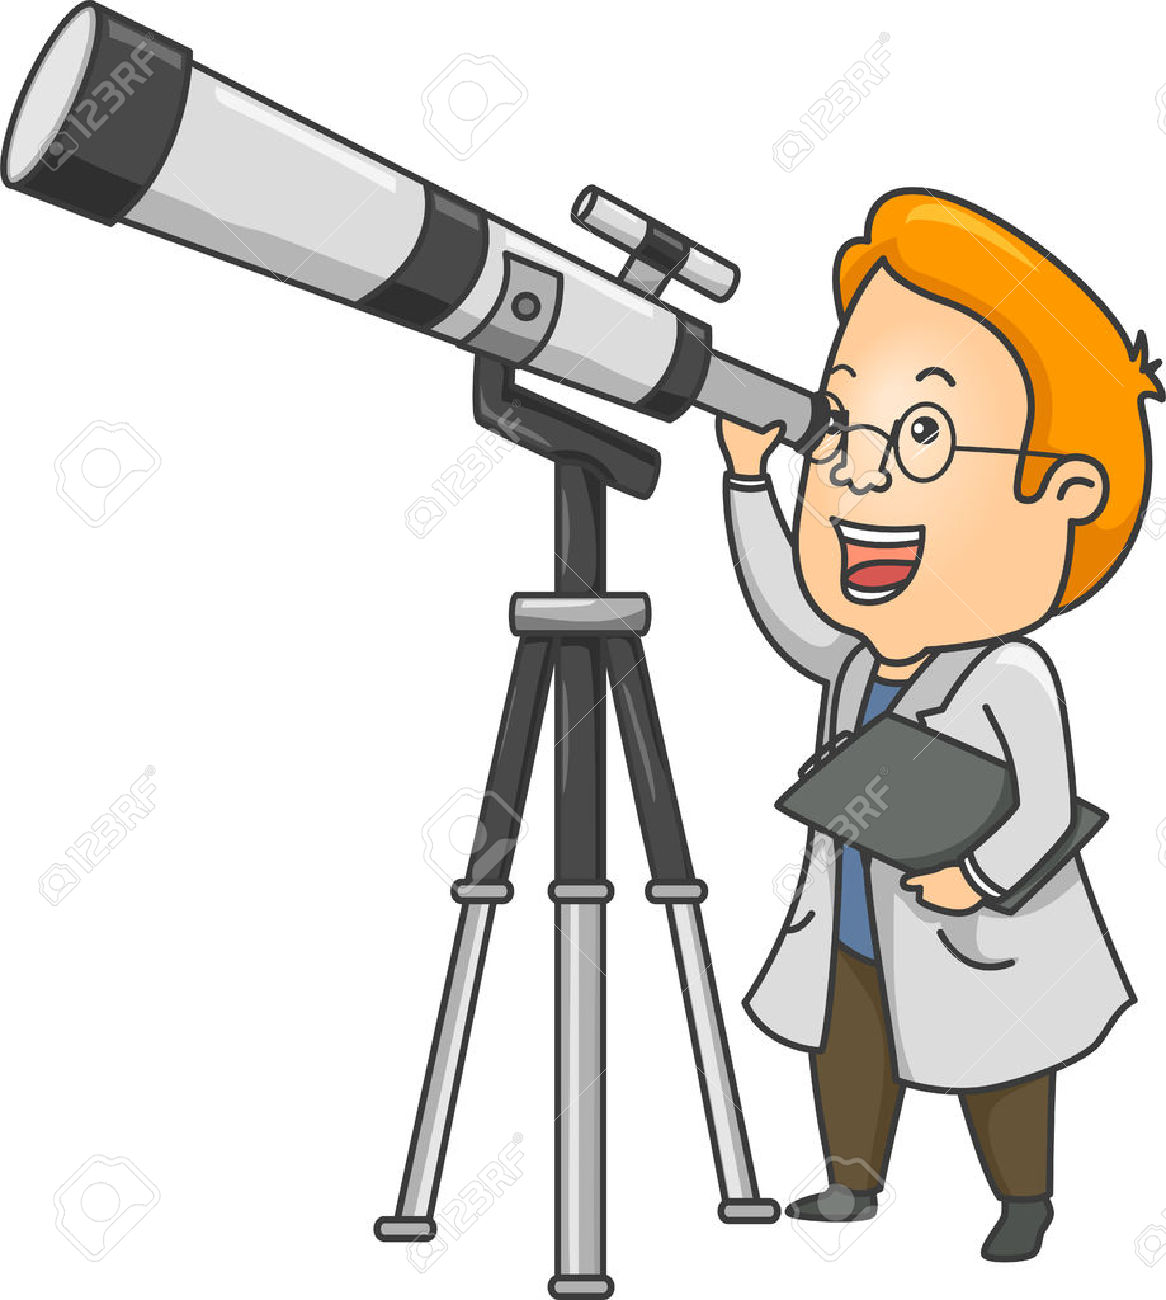 Illustration Of A Researcher Using A Long Range Telescope Royalty.